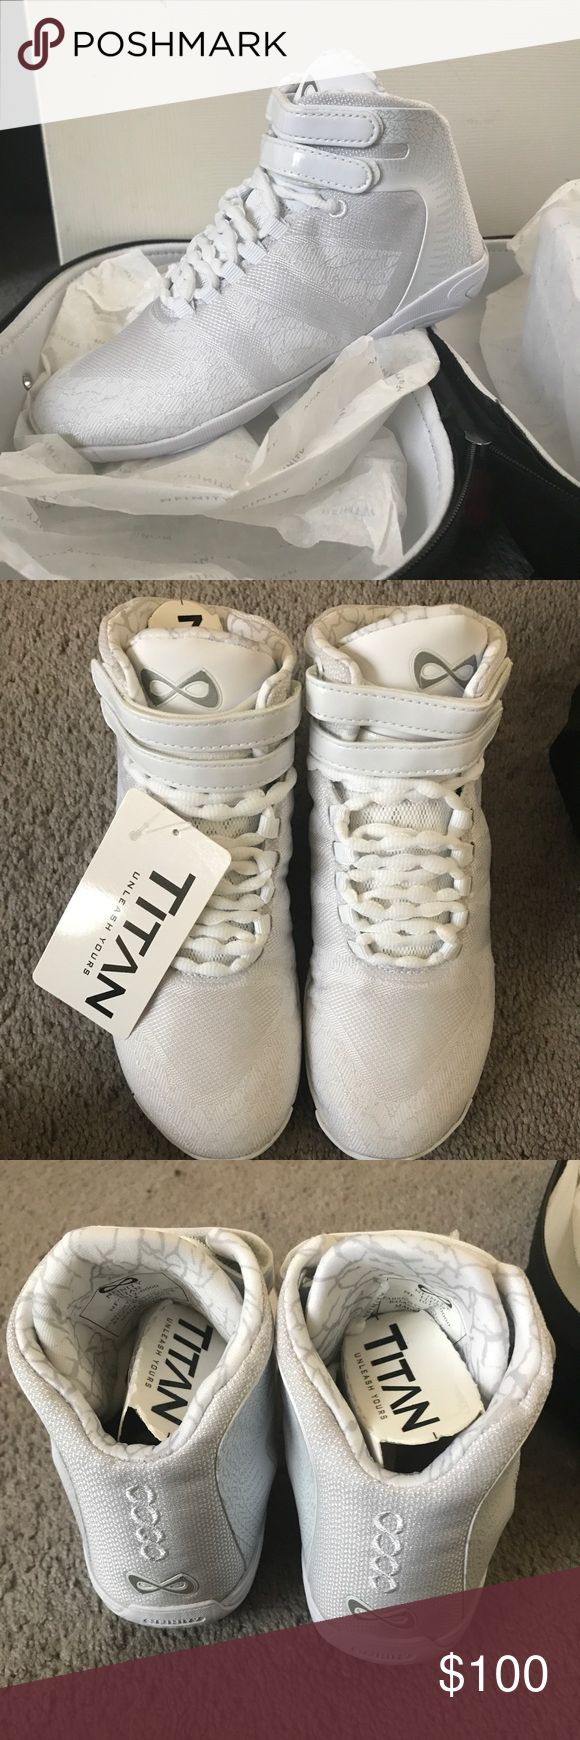 nfinity titan adult cheer shoes size 5 white high top nfinitys brand new and never been worn!!! size 5   $119 is the price listed on their website NFINITY Shoes Athletic Shoes